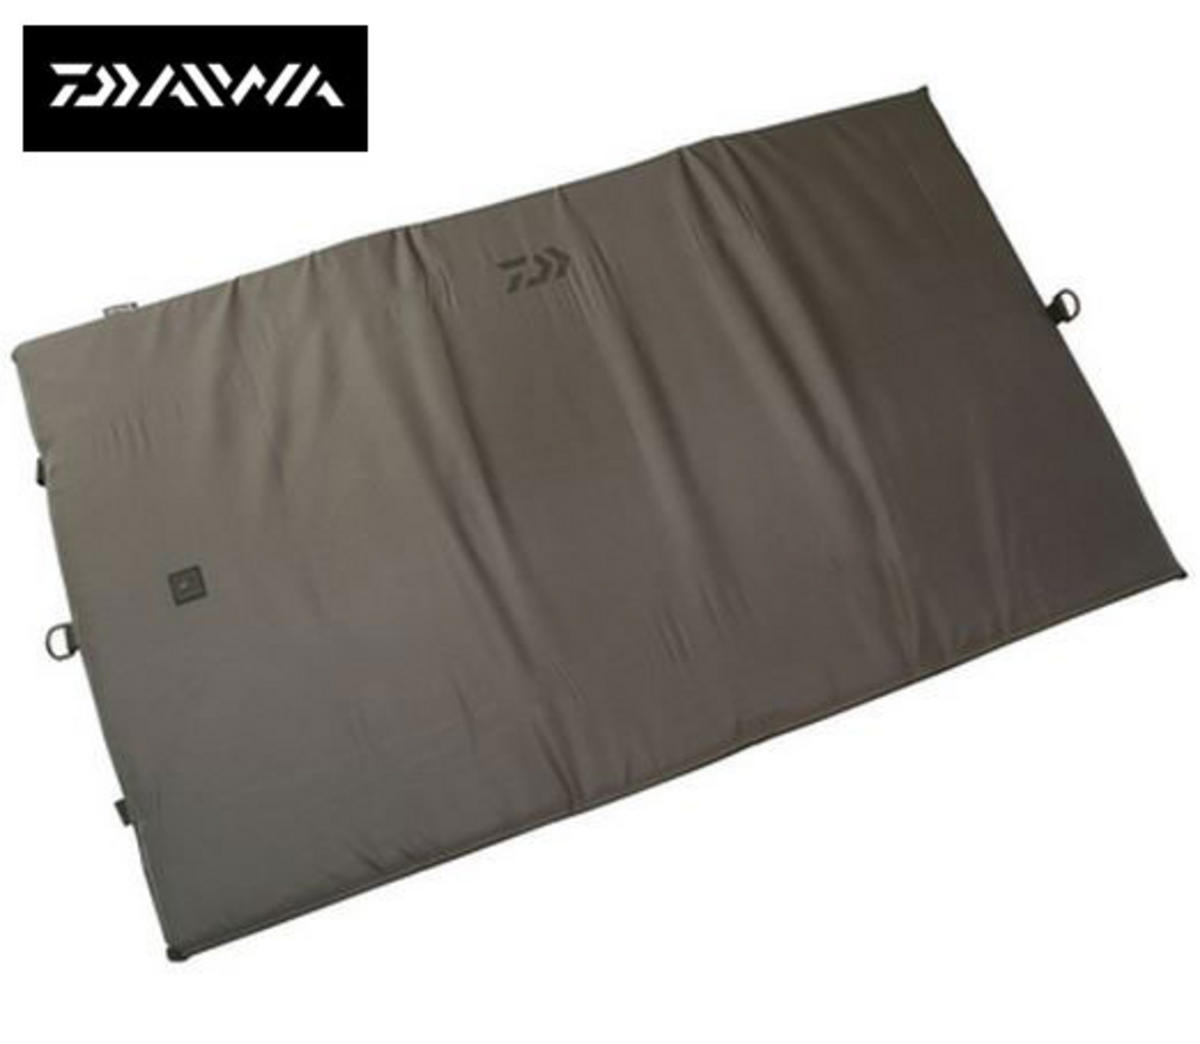 New Daiwa Black Widow Unhooking Mat - BWUM